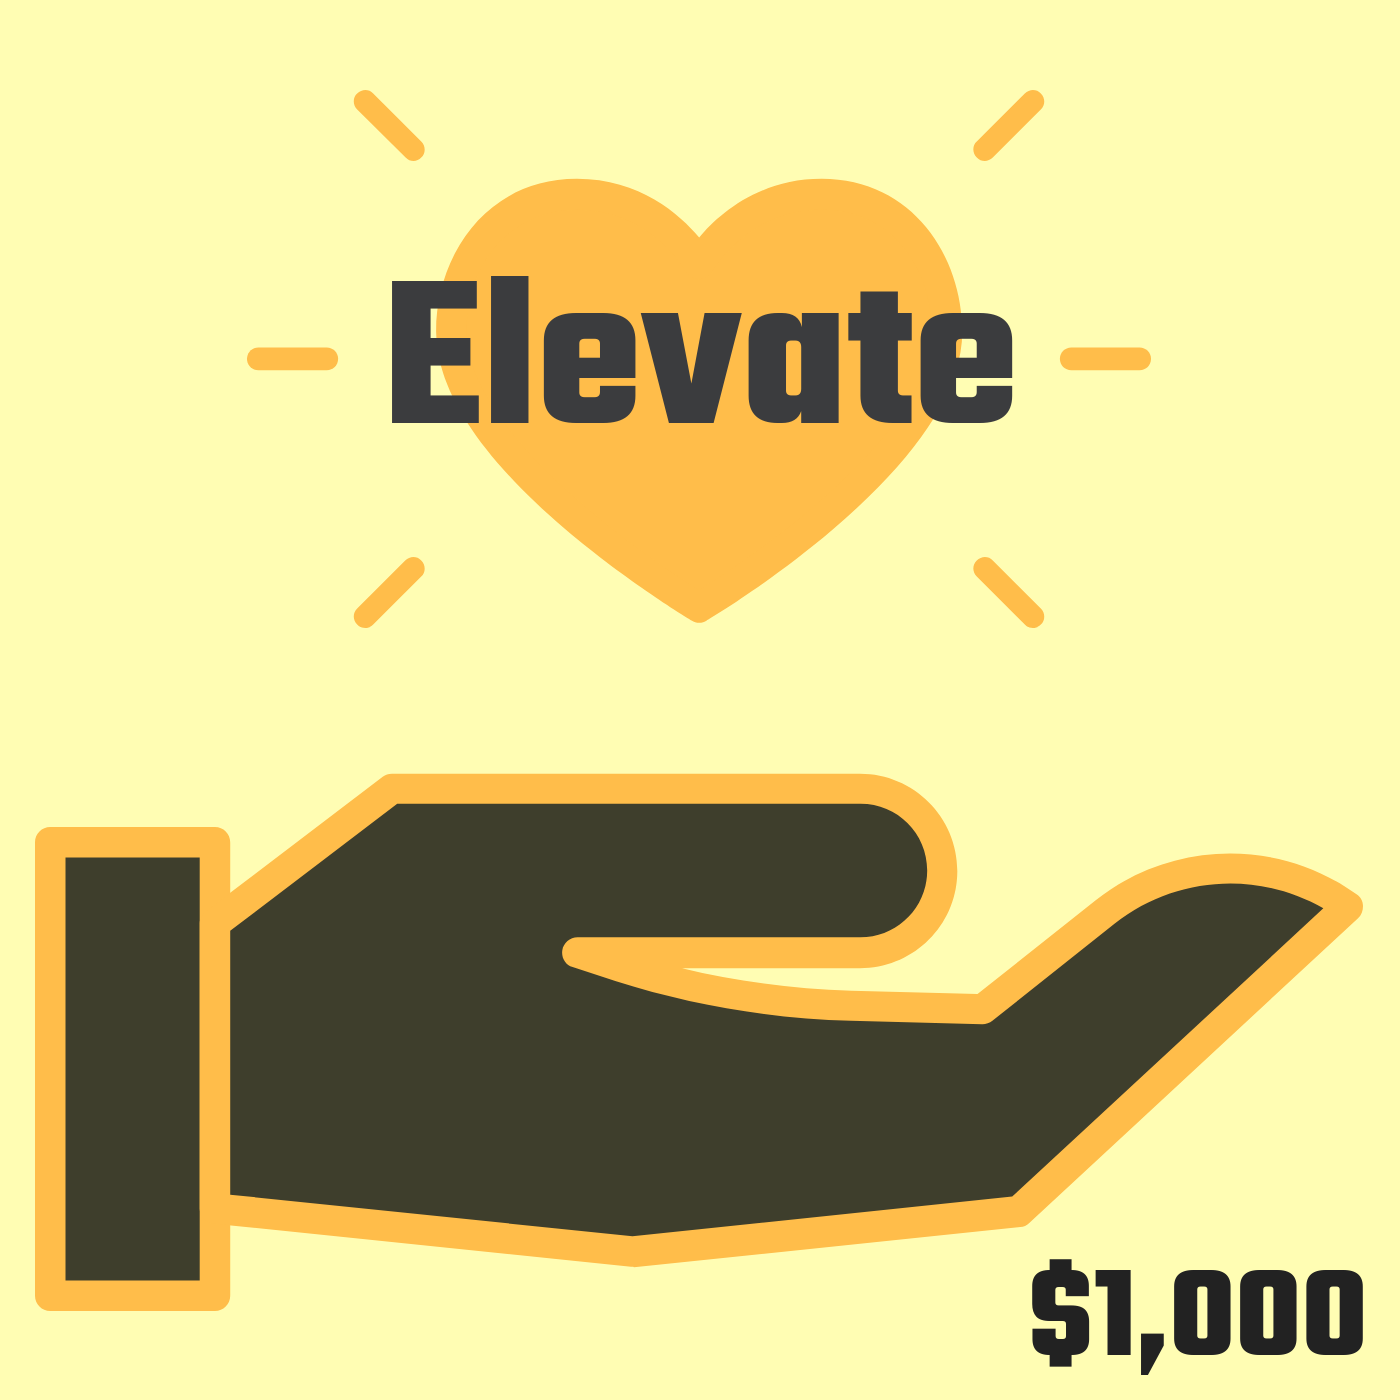 Elevate ($1,000+) - You love us, you really love us! We're so grateful for you and want to go deeper. We want to learn from you and share more of ourselves with you and yours. Benefits for Engage Patrons include everything from the previous packages and:- a Let's Care podcast episode featuring you and your impact — because we want to know more about who you are and why impact is so important to you- a 1 day social media takeover (including Facebook or Instagram Live) where we interact with your community through your channels- a live digital event on Zoom, Google Hangouts on Air or another webinar platform for you and your community- prominent recognition at film screening events